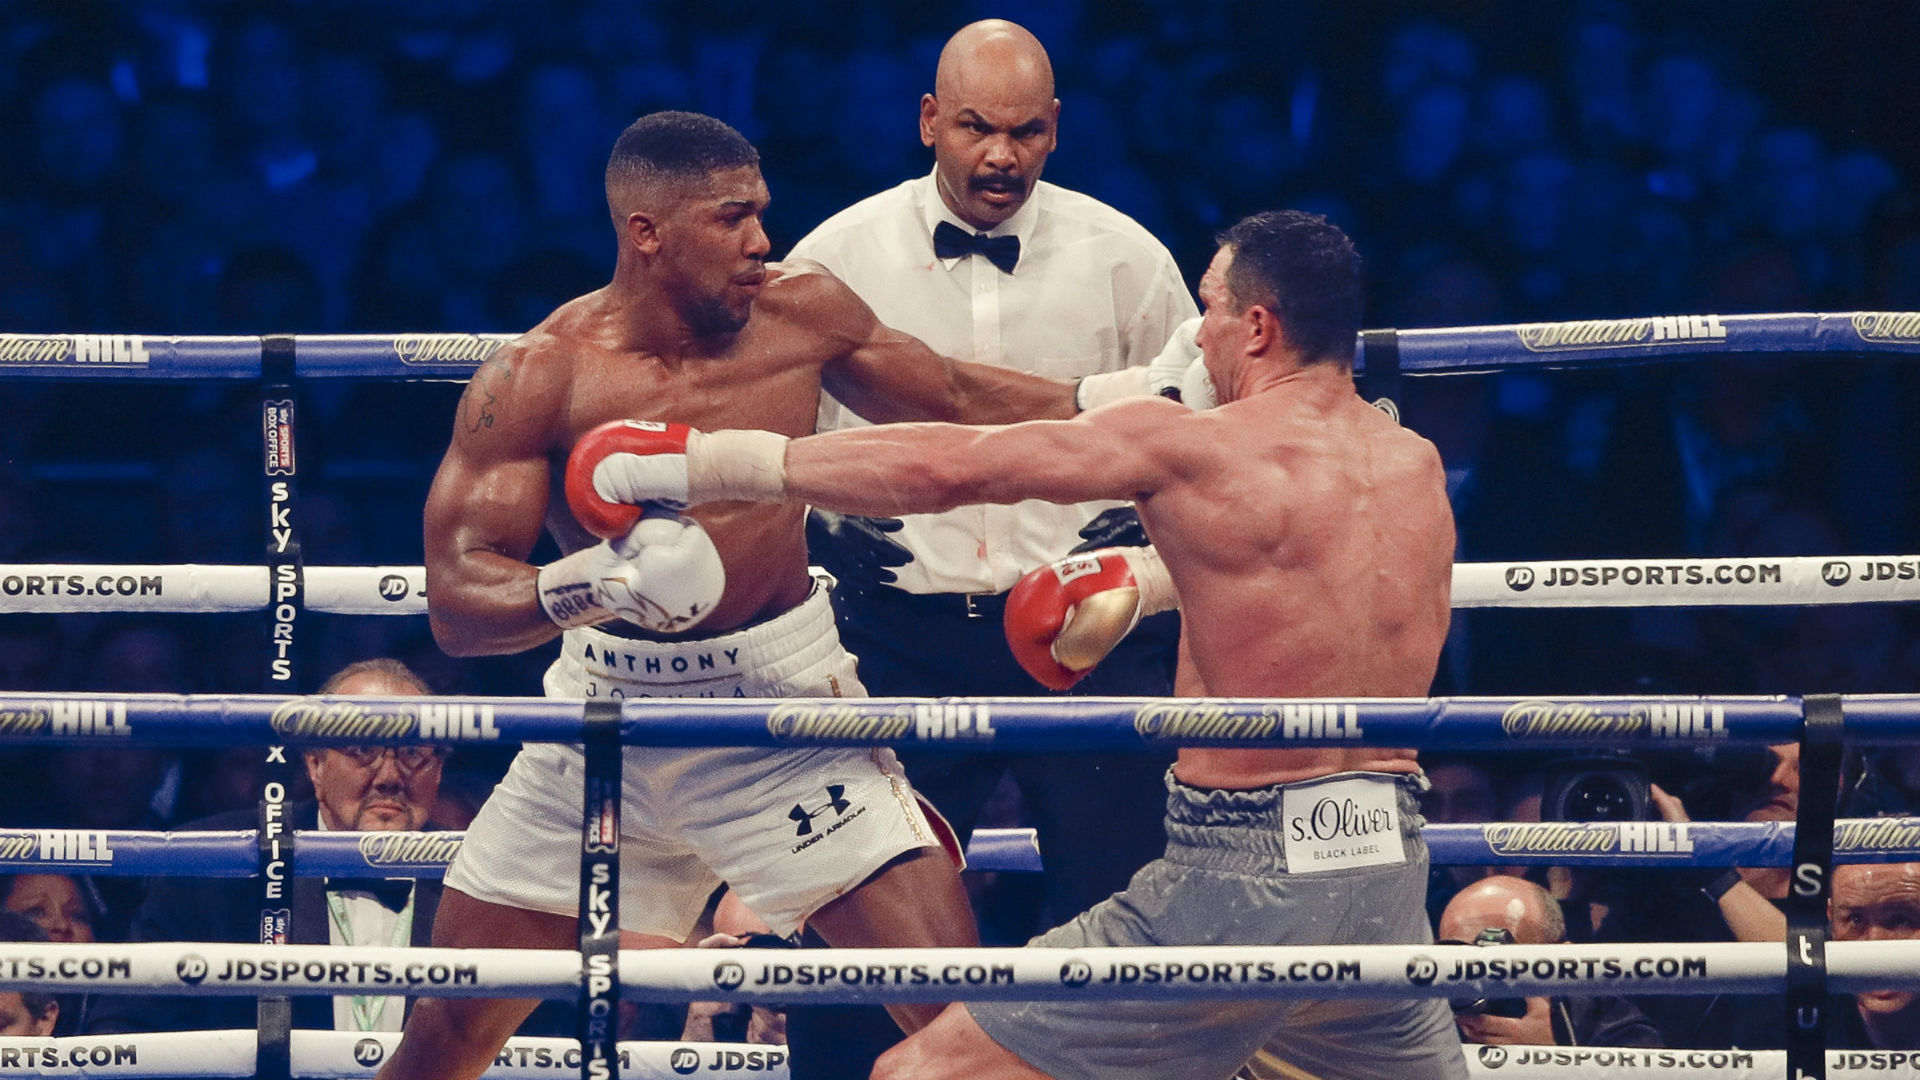 Image result for anthony joshua vs. wladimir klitschko